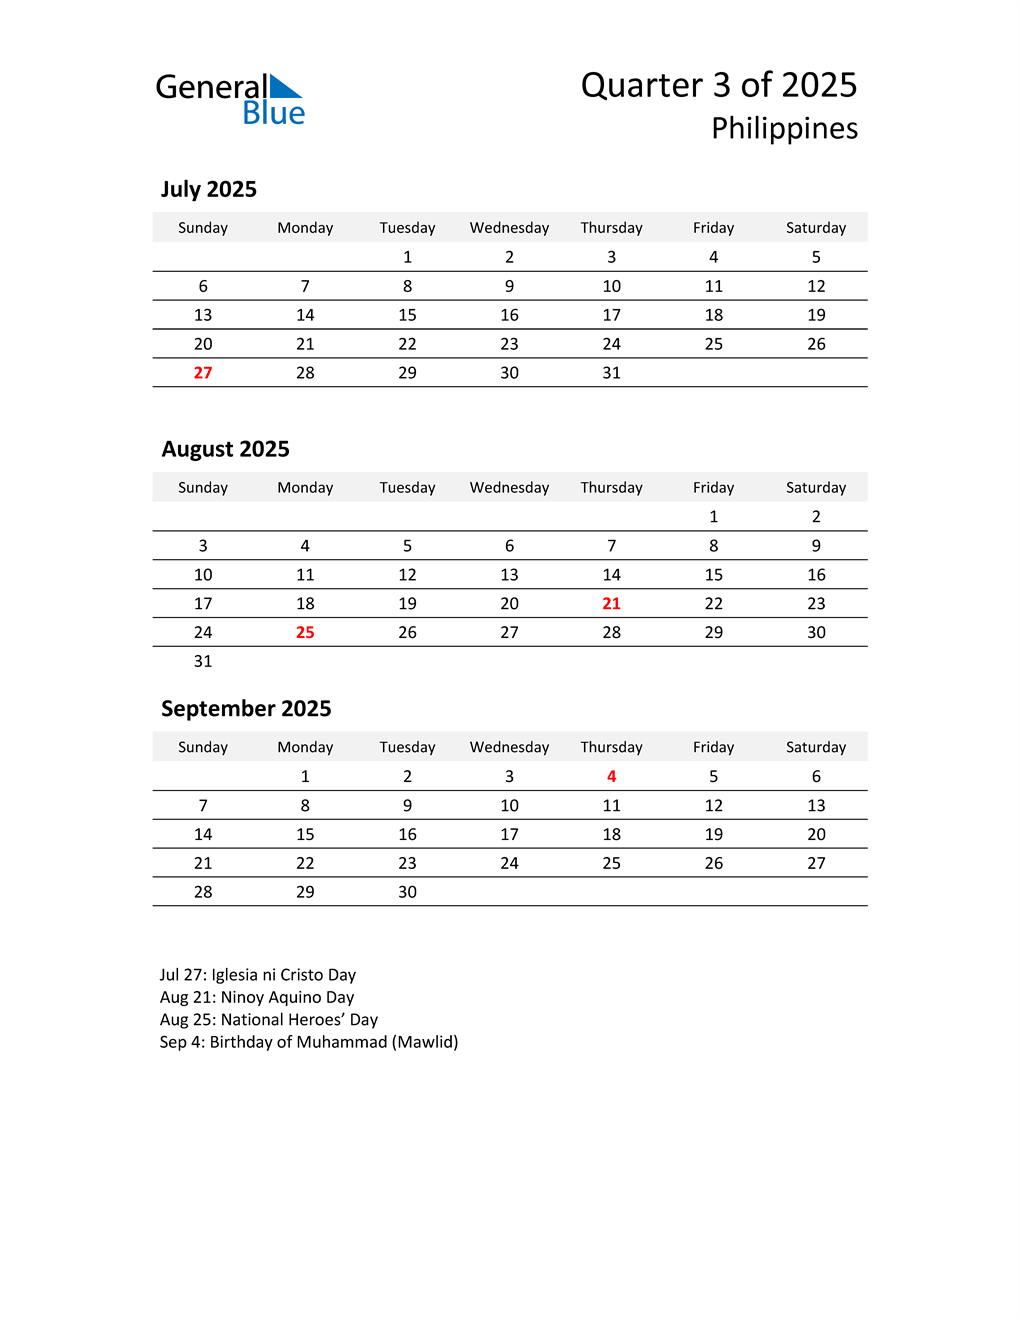 2025 Three-Month Calendar for Philippines